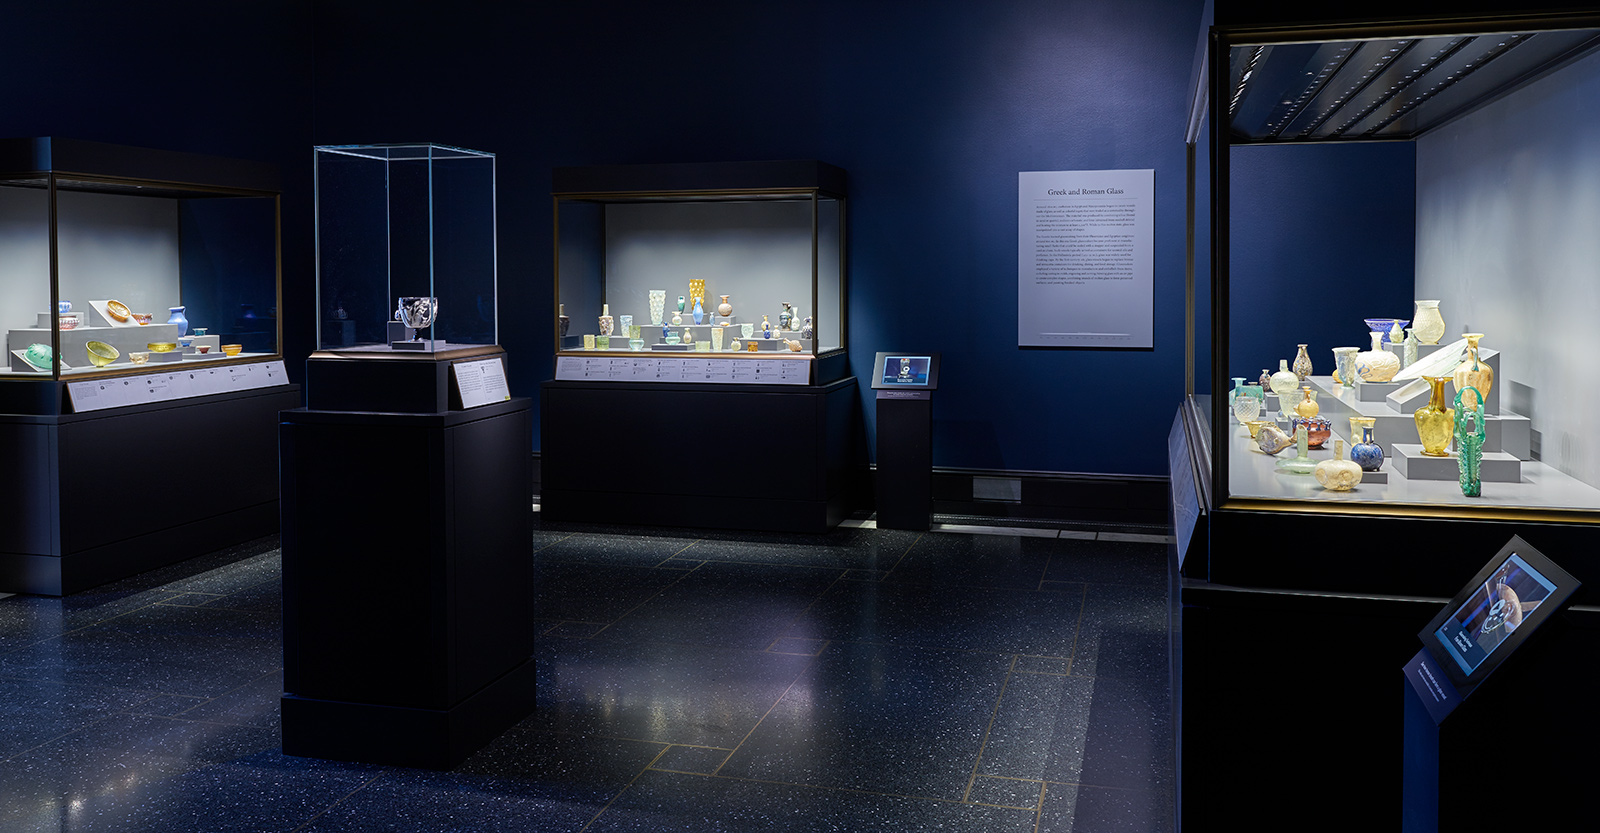 Interior view of a darkly lit gallery with showcases filled with small, vividly colored glass vessels